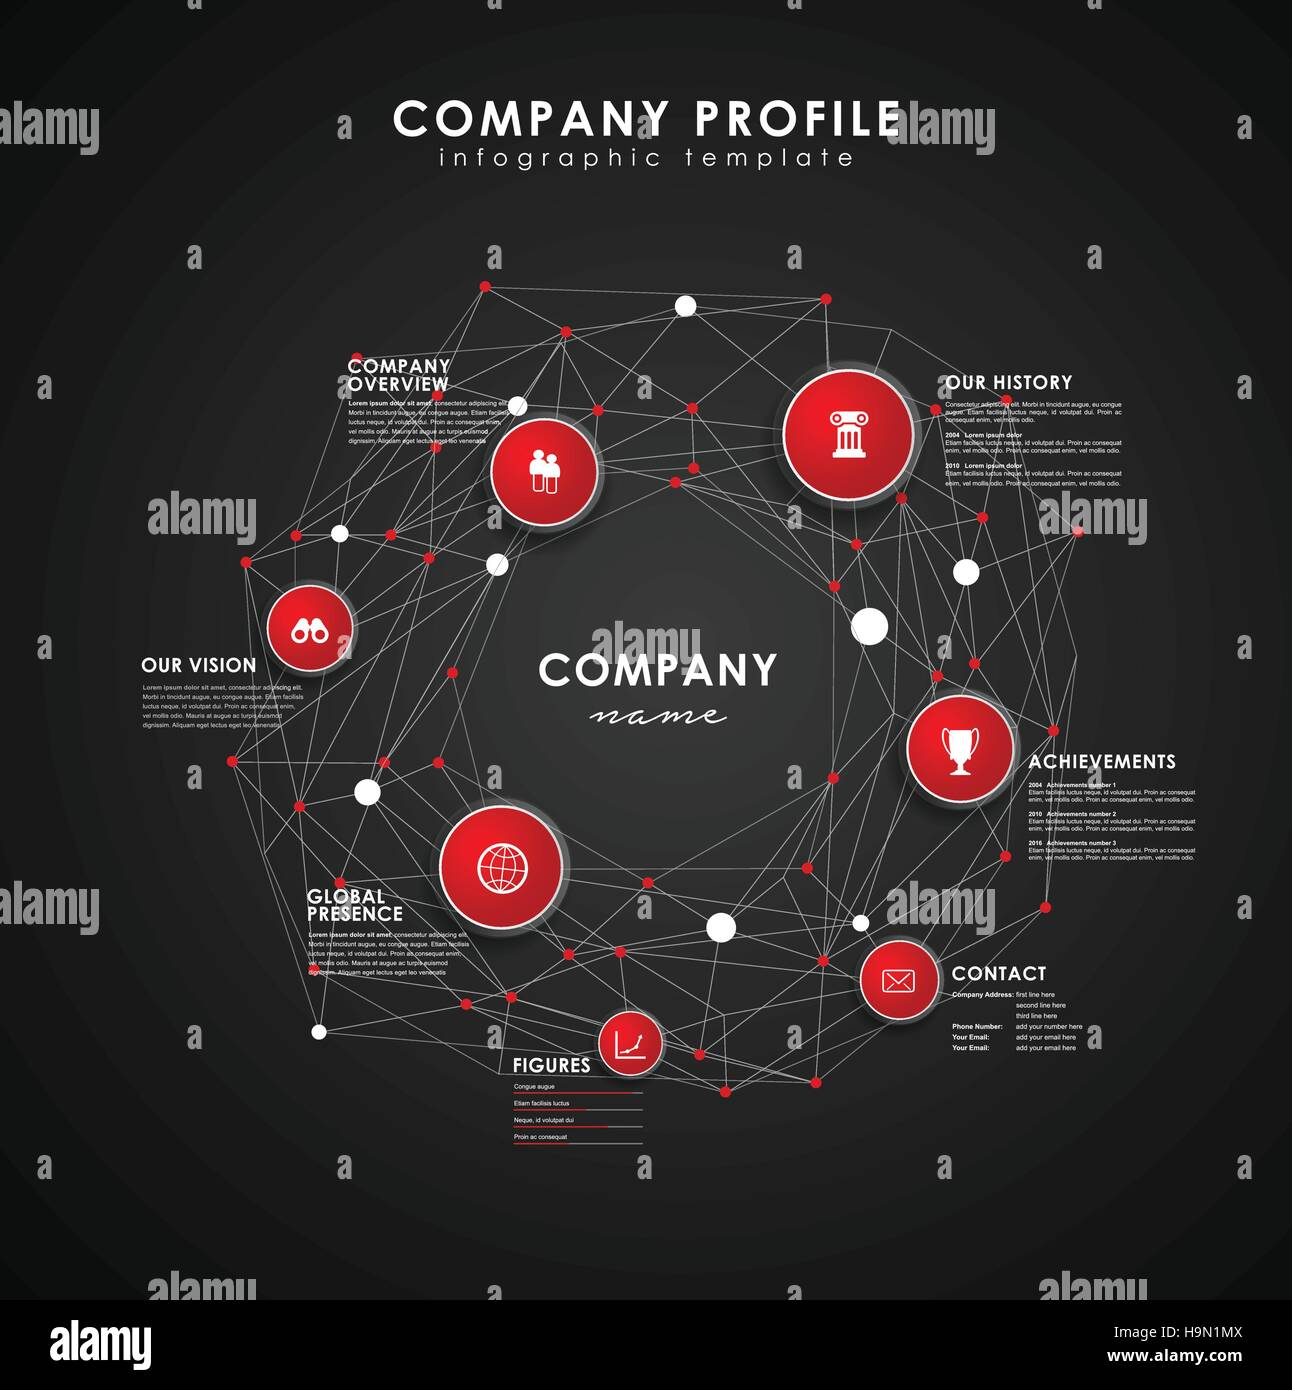 Company profile overview template with red circles and dots - dark ...